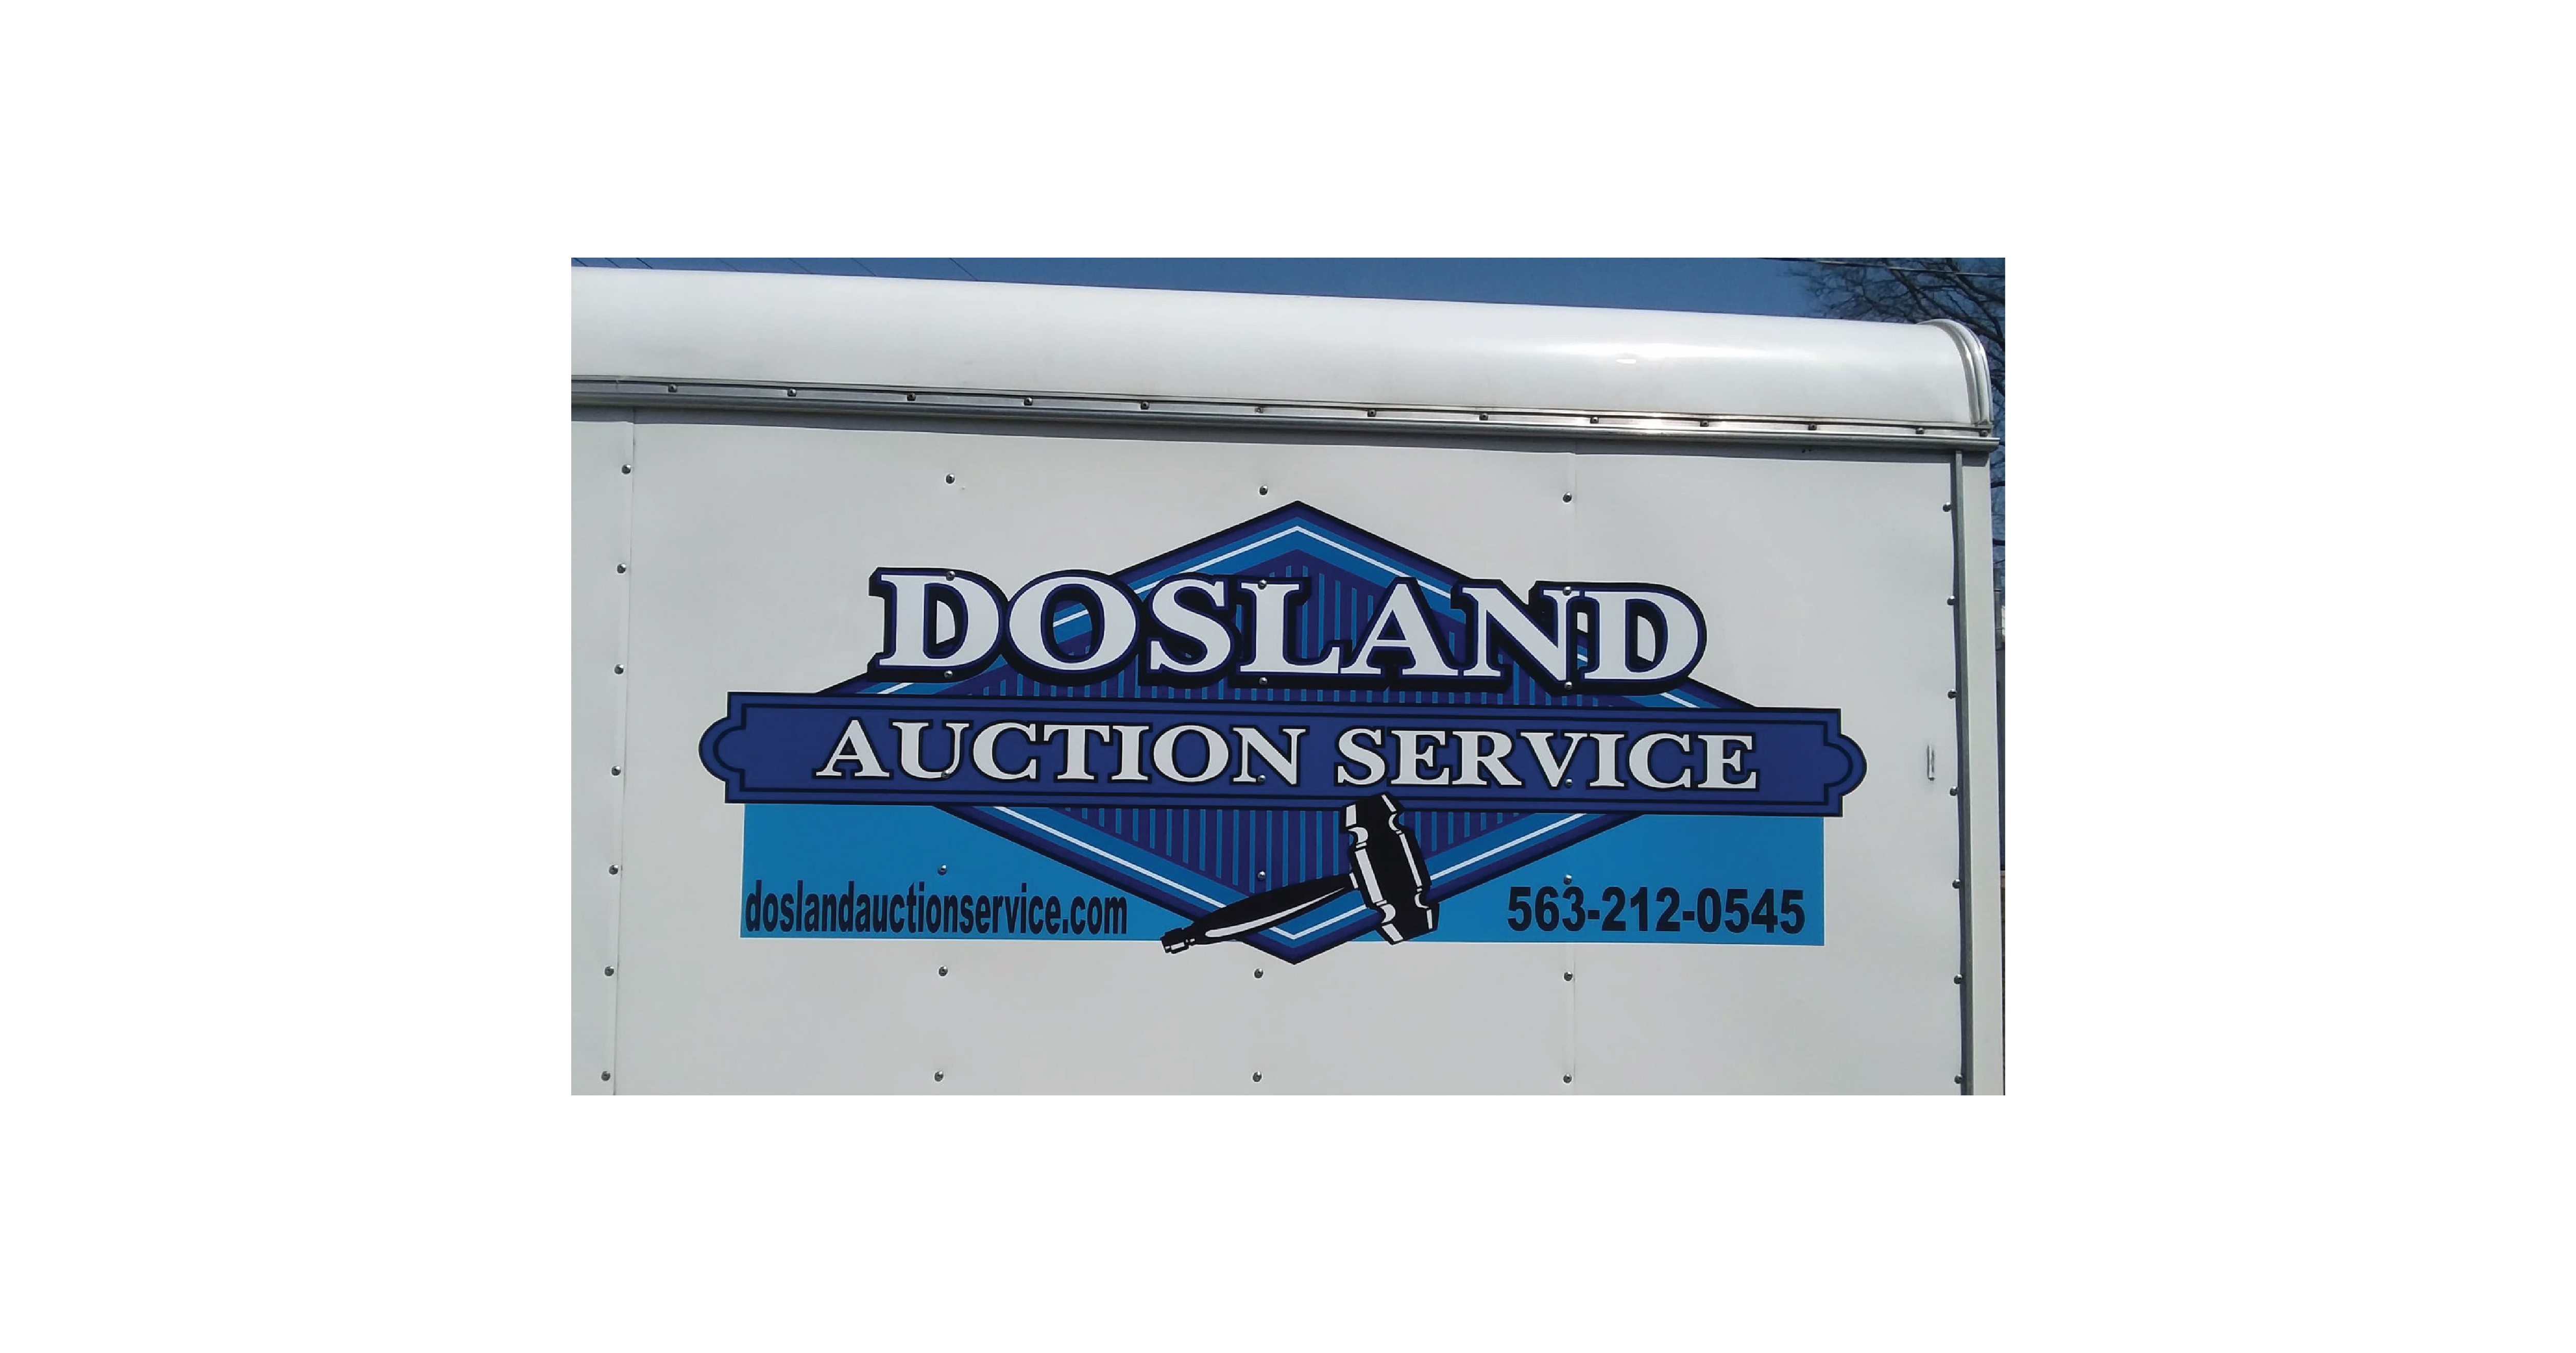 Dosland Auction Service Wrap